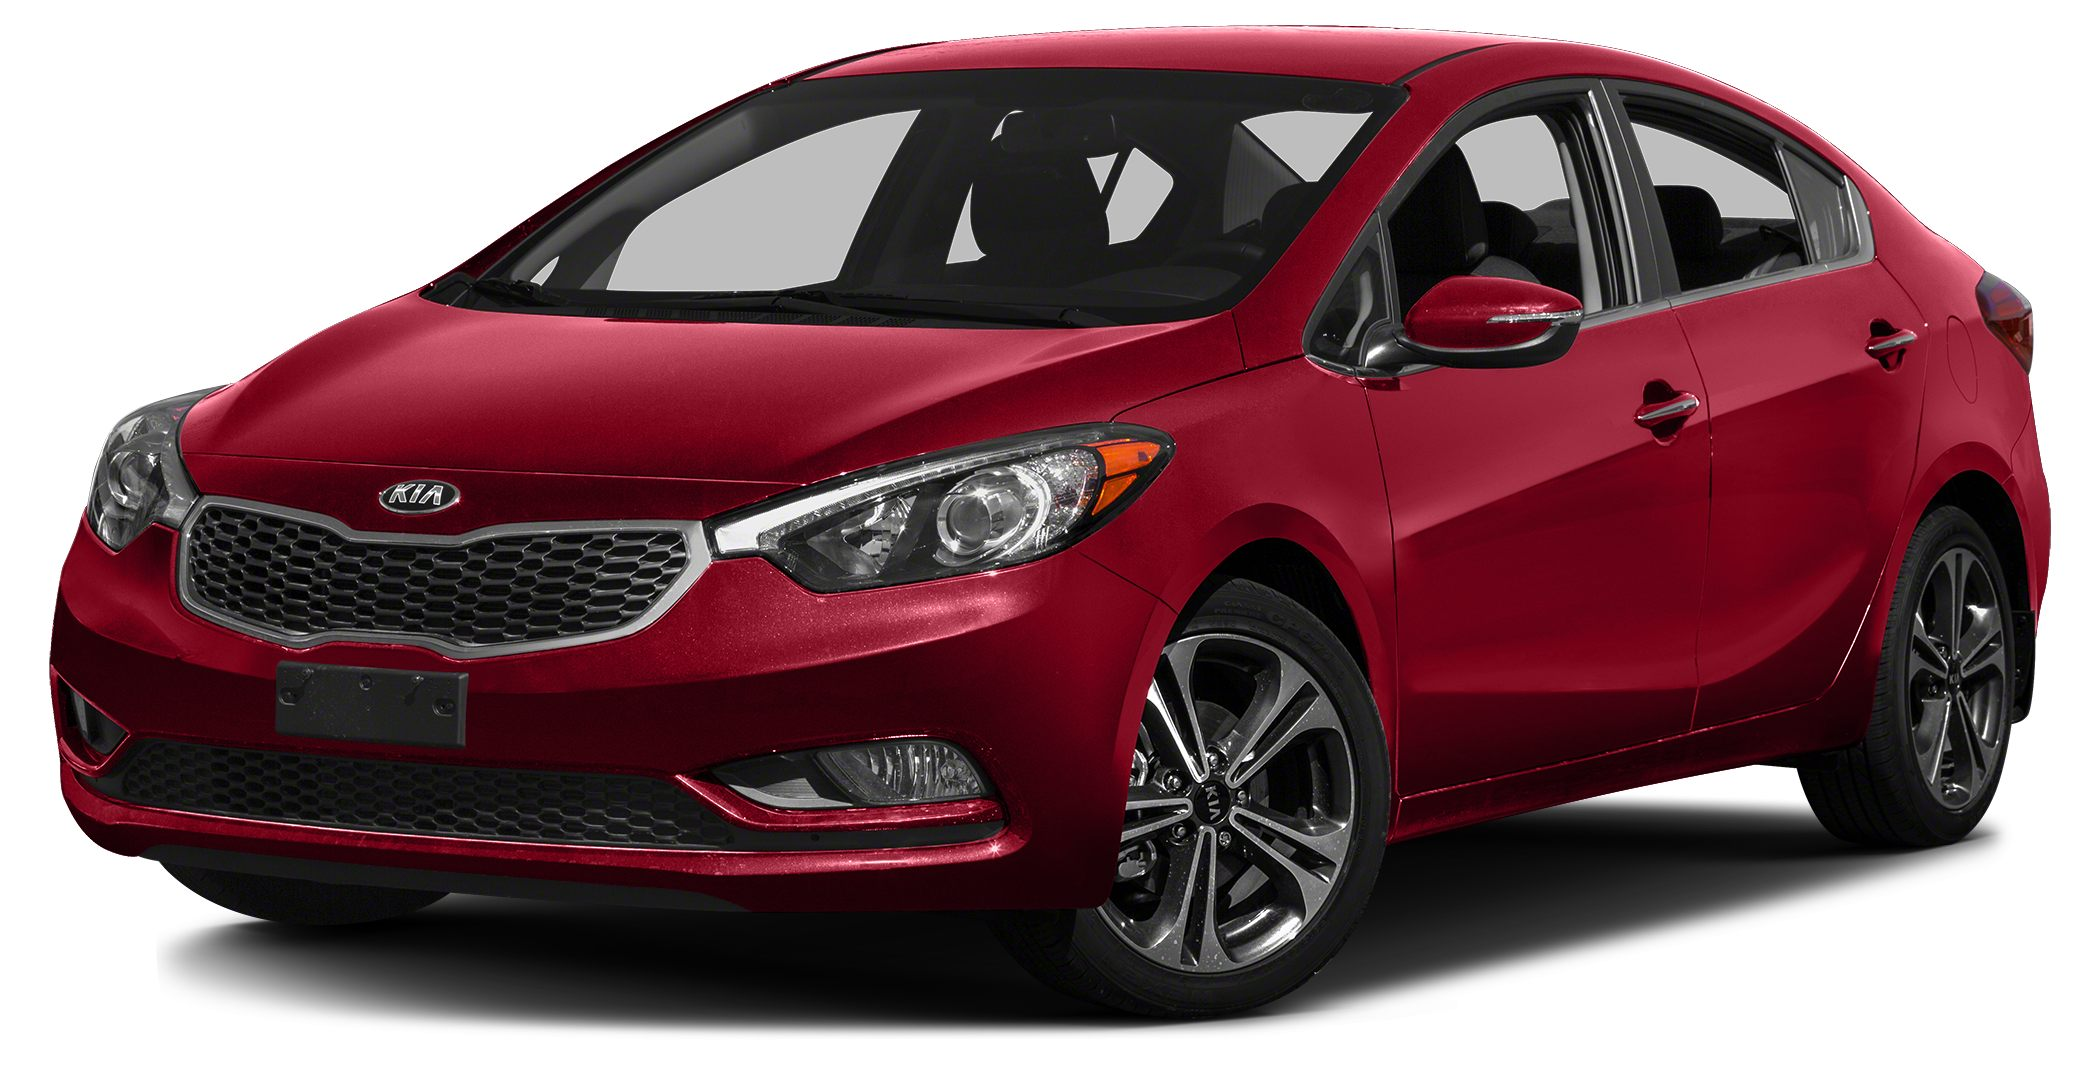 2016 Kia Forte LX Miles 2154Color Crimson Red Metallic Stock K15331 VIN KNAFX4A65G5611247